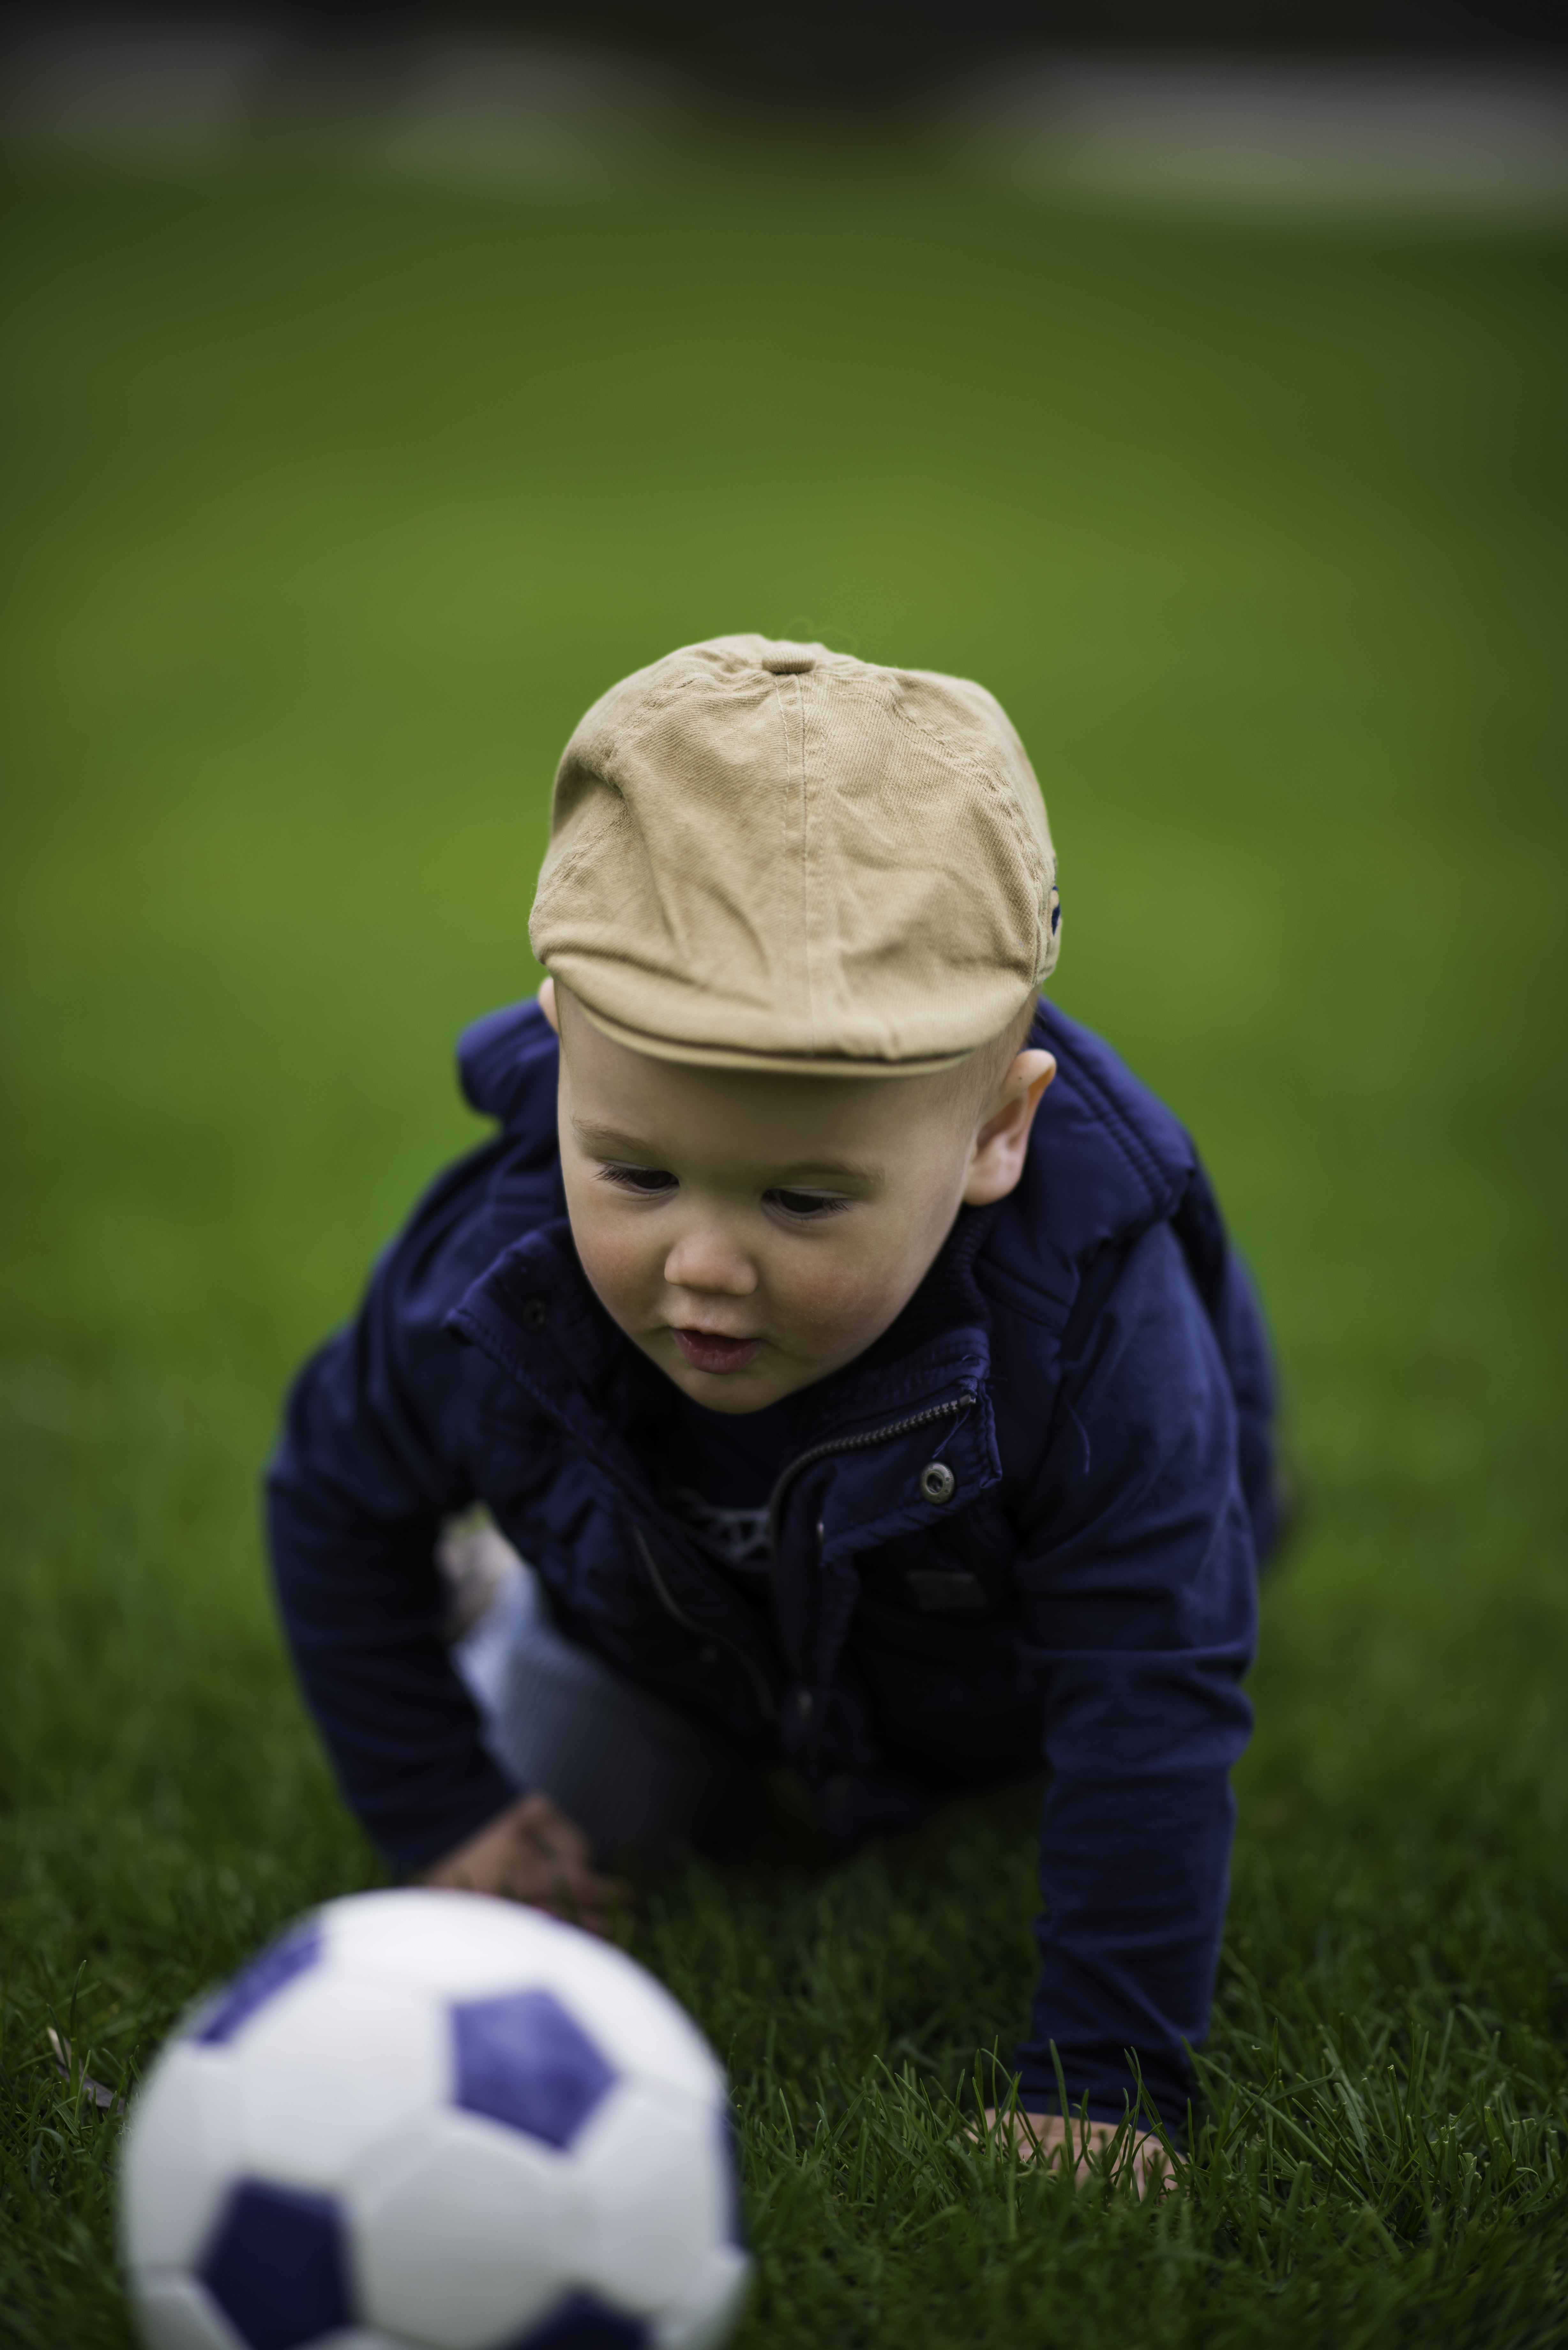 Playing with the Grass